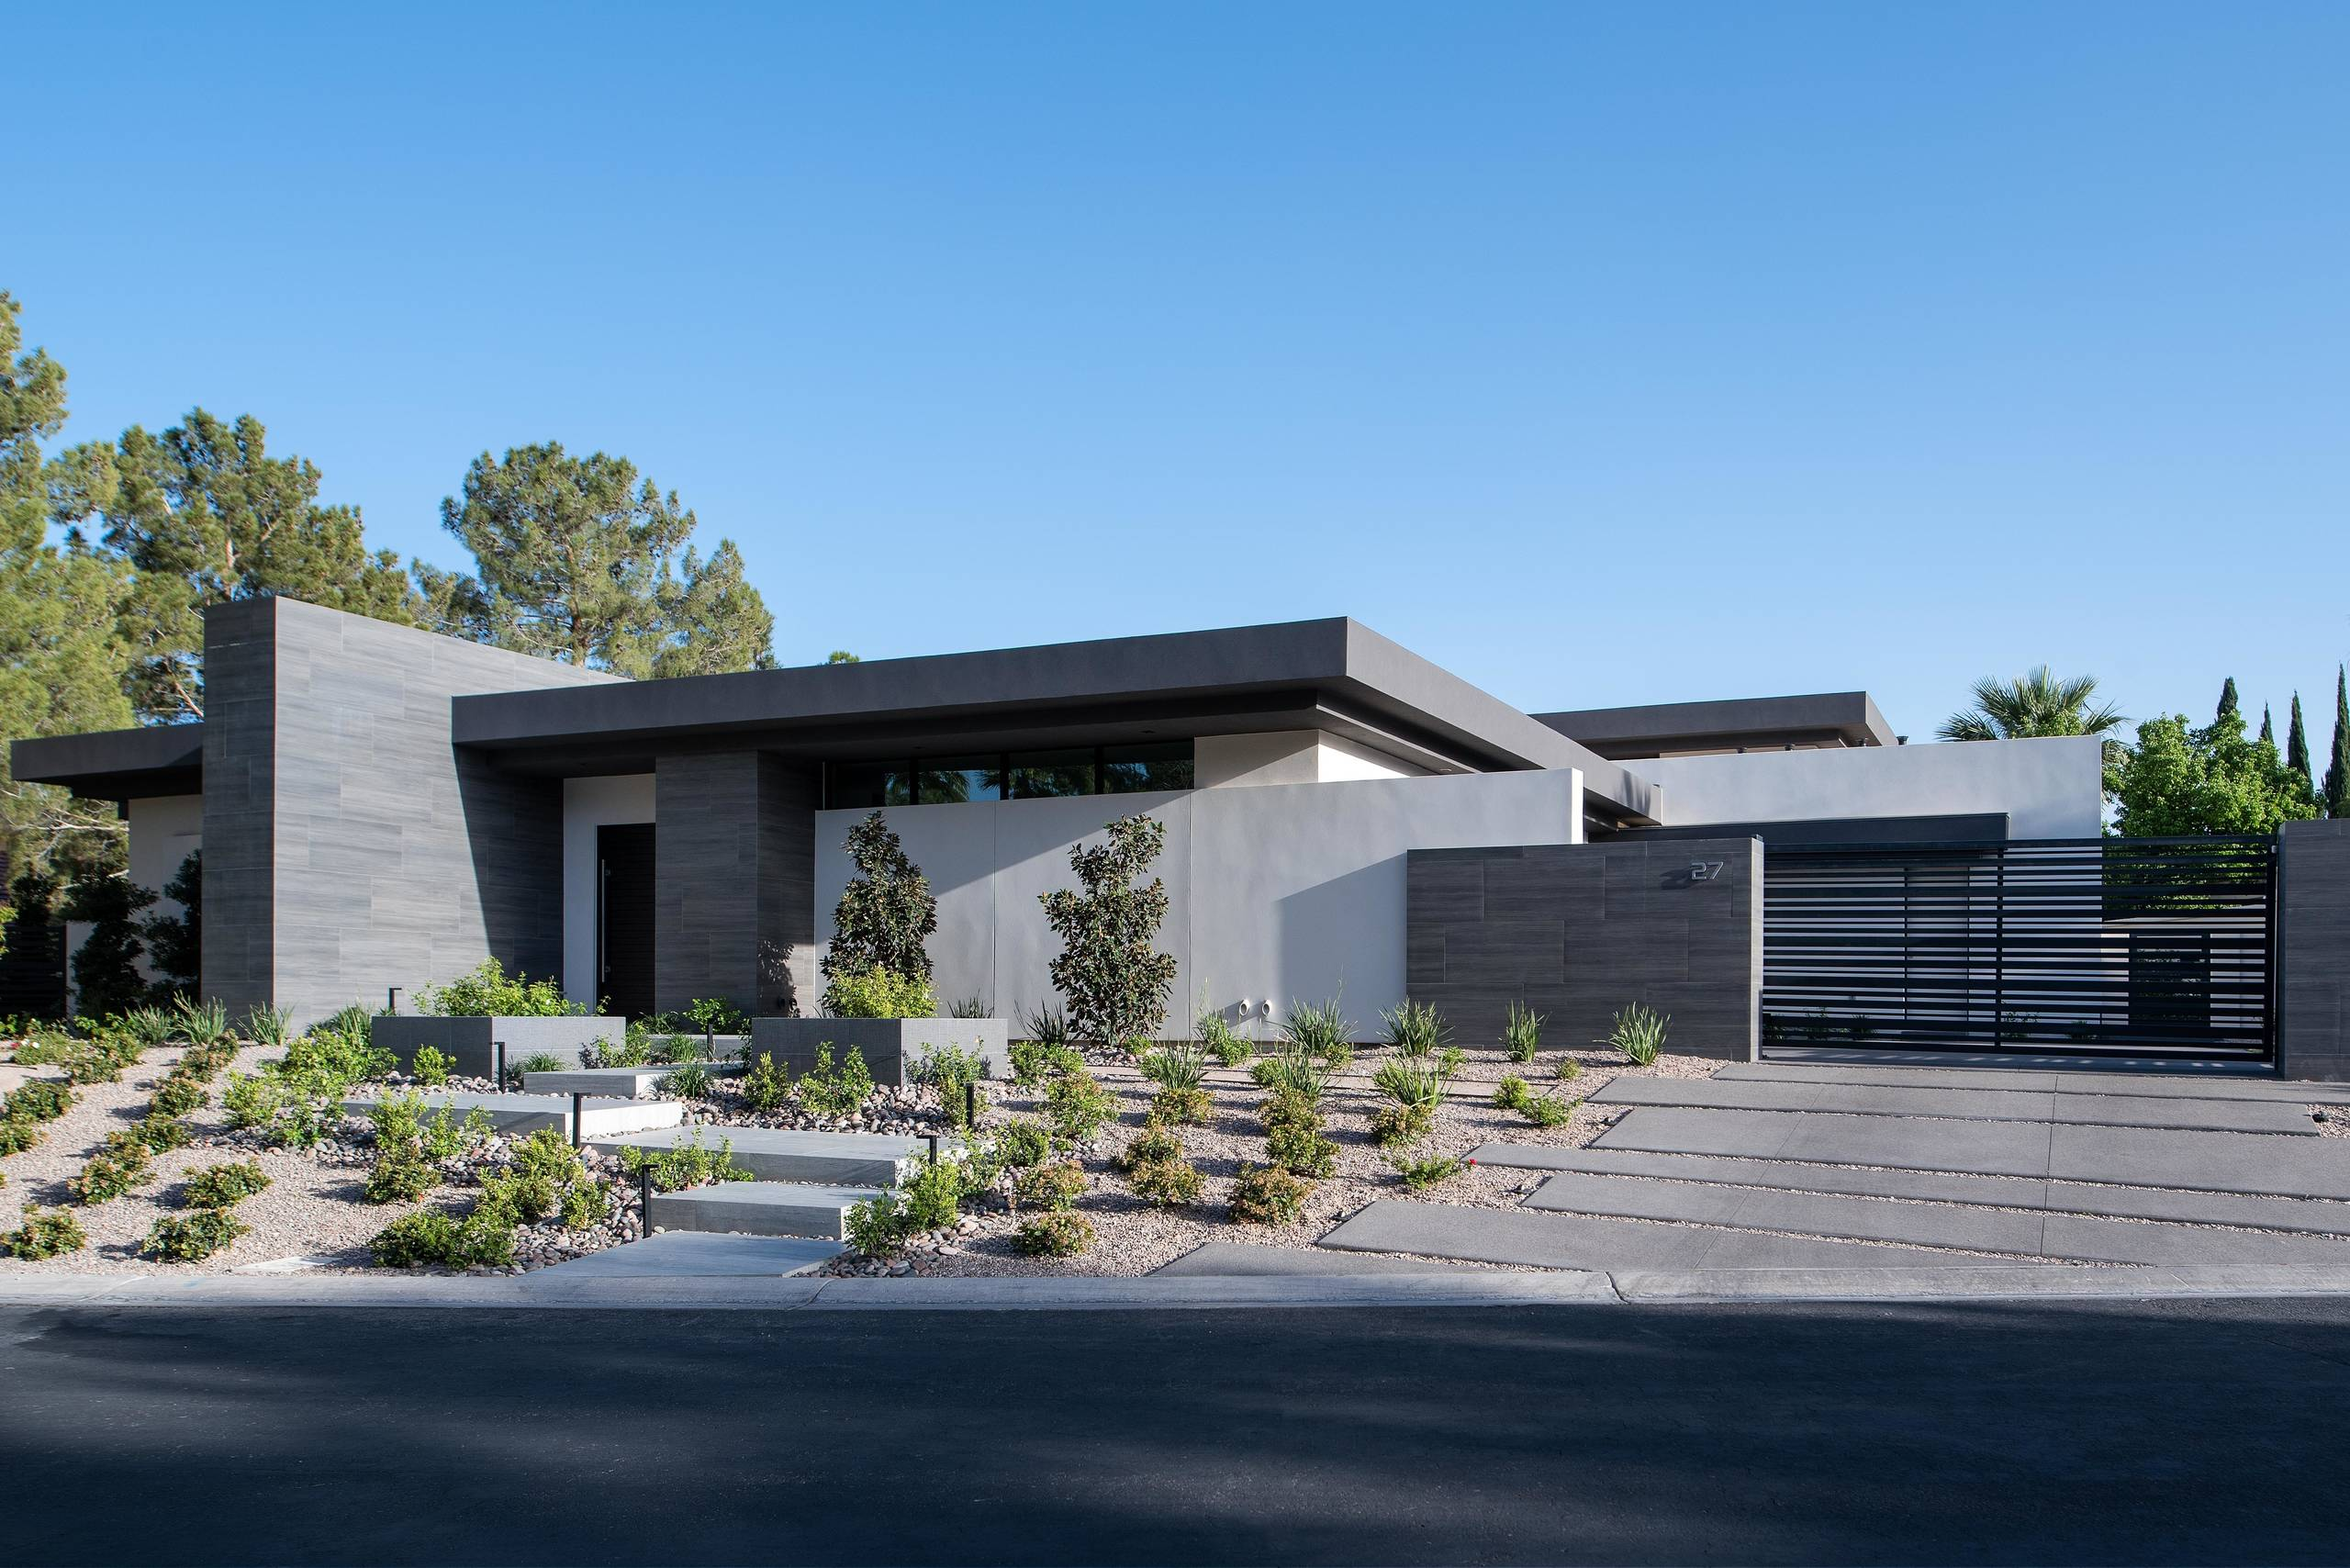 75 Beautiful Stucco Exterior Home Pictures Ideas October 2020 Houzz